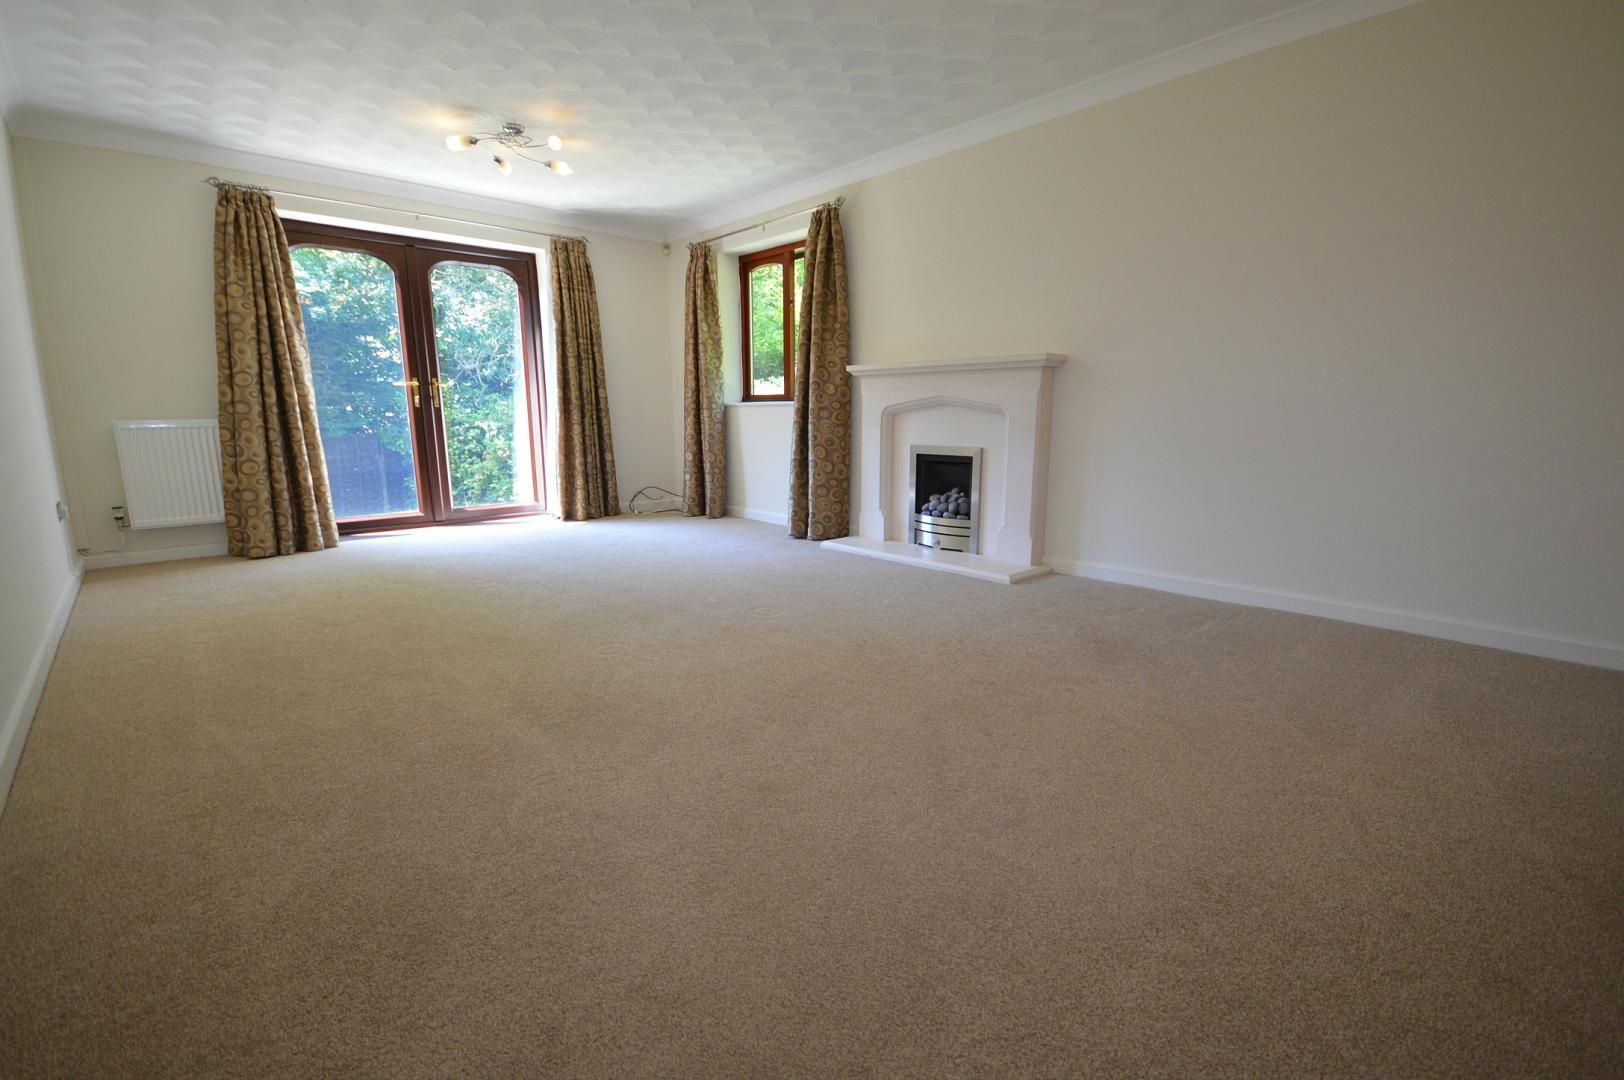 3 bed house to rent 4